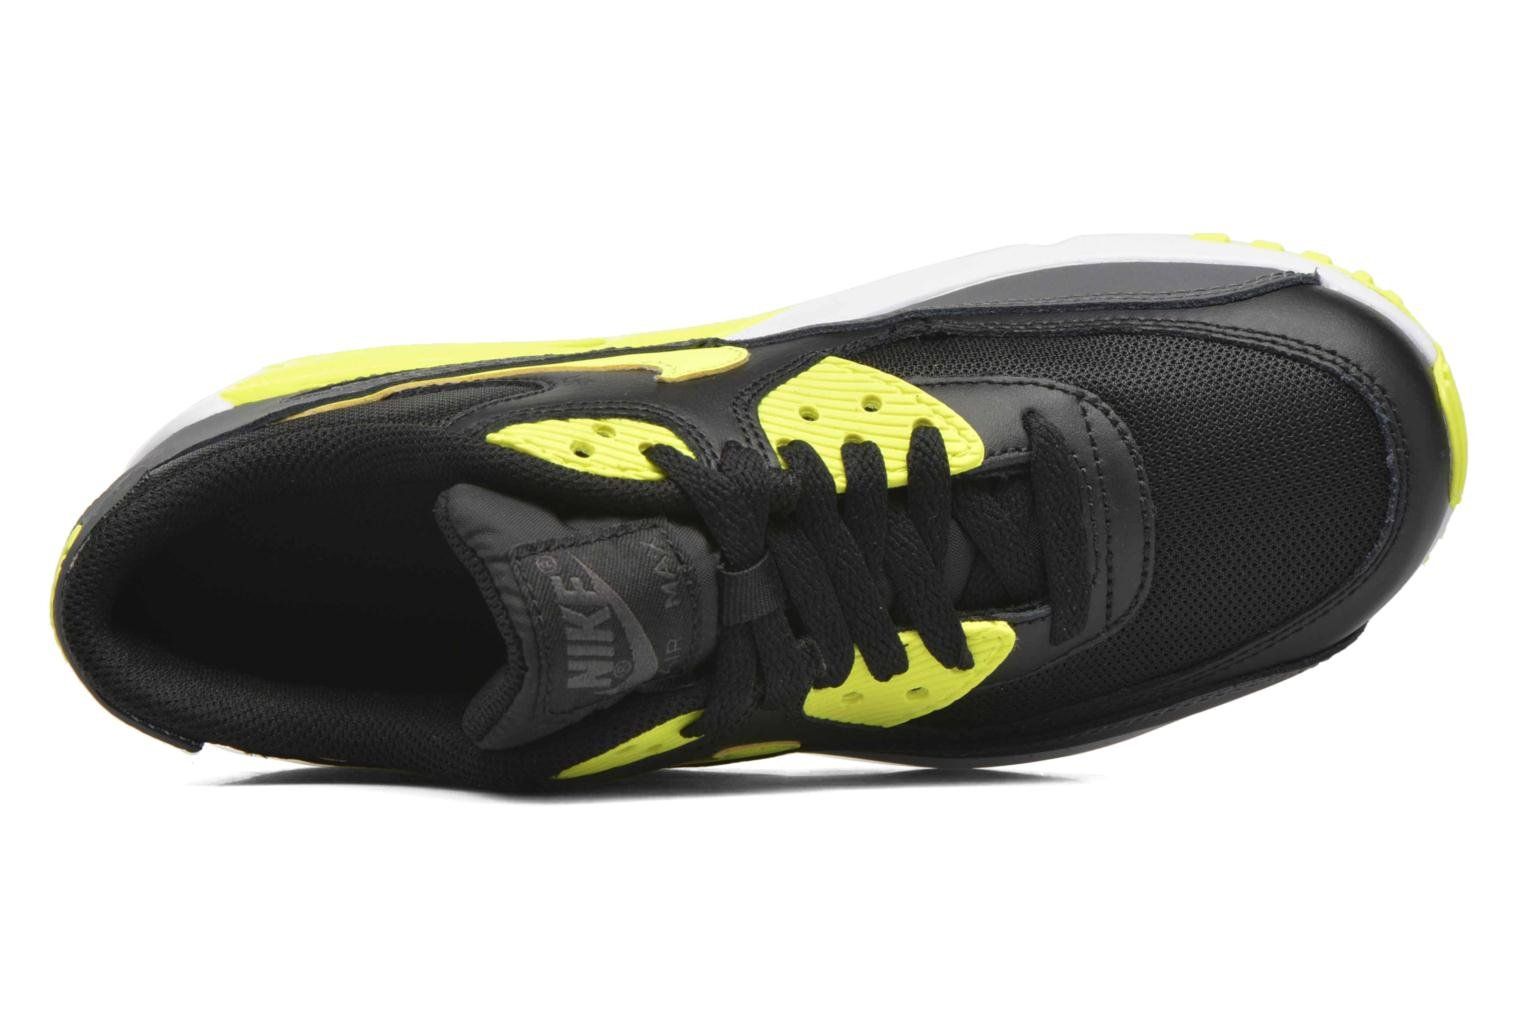 NIKE AIR MAX 90 MESH (GS) Black/volt-dark grey-white